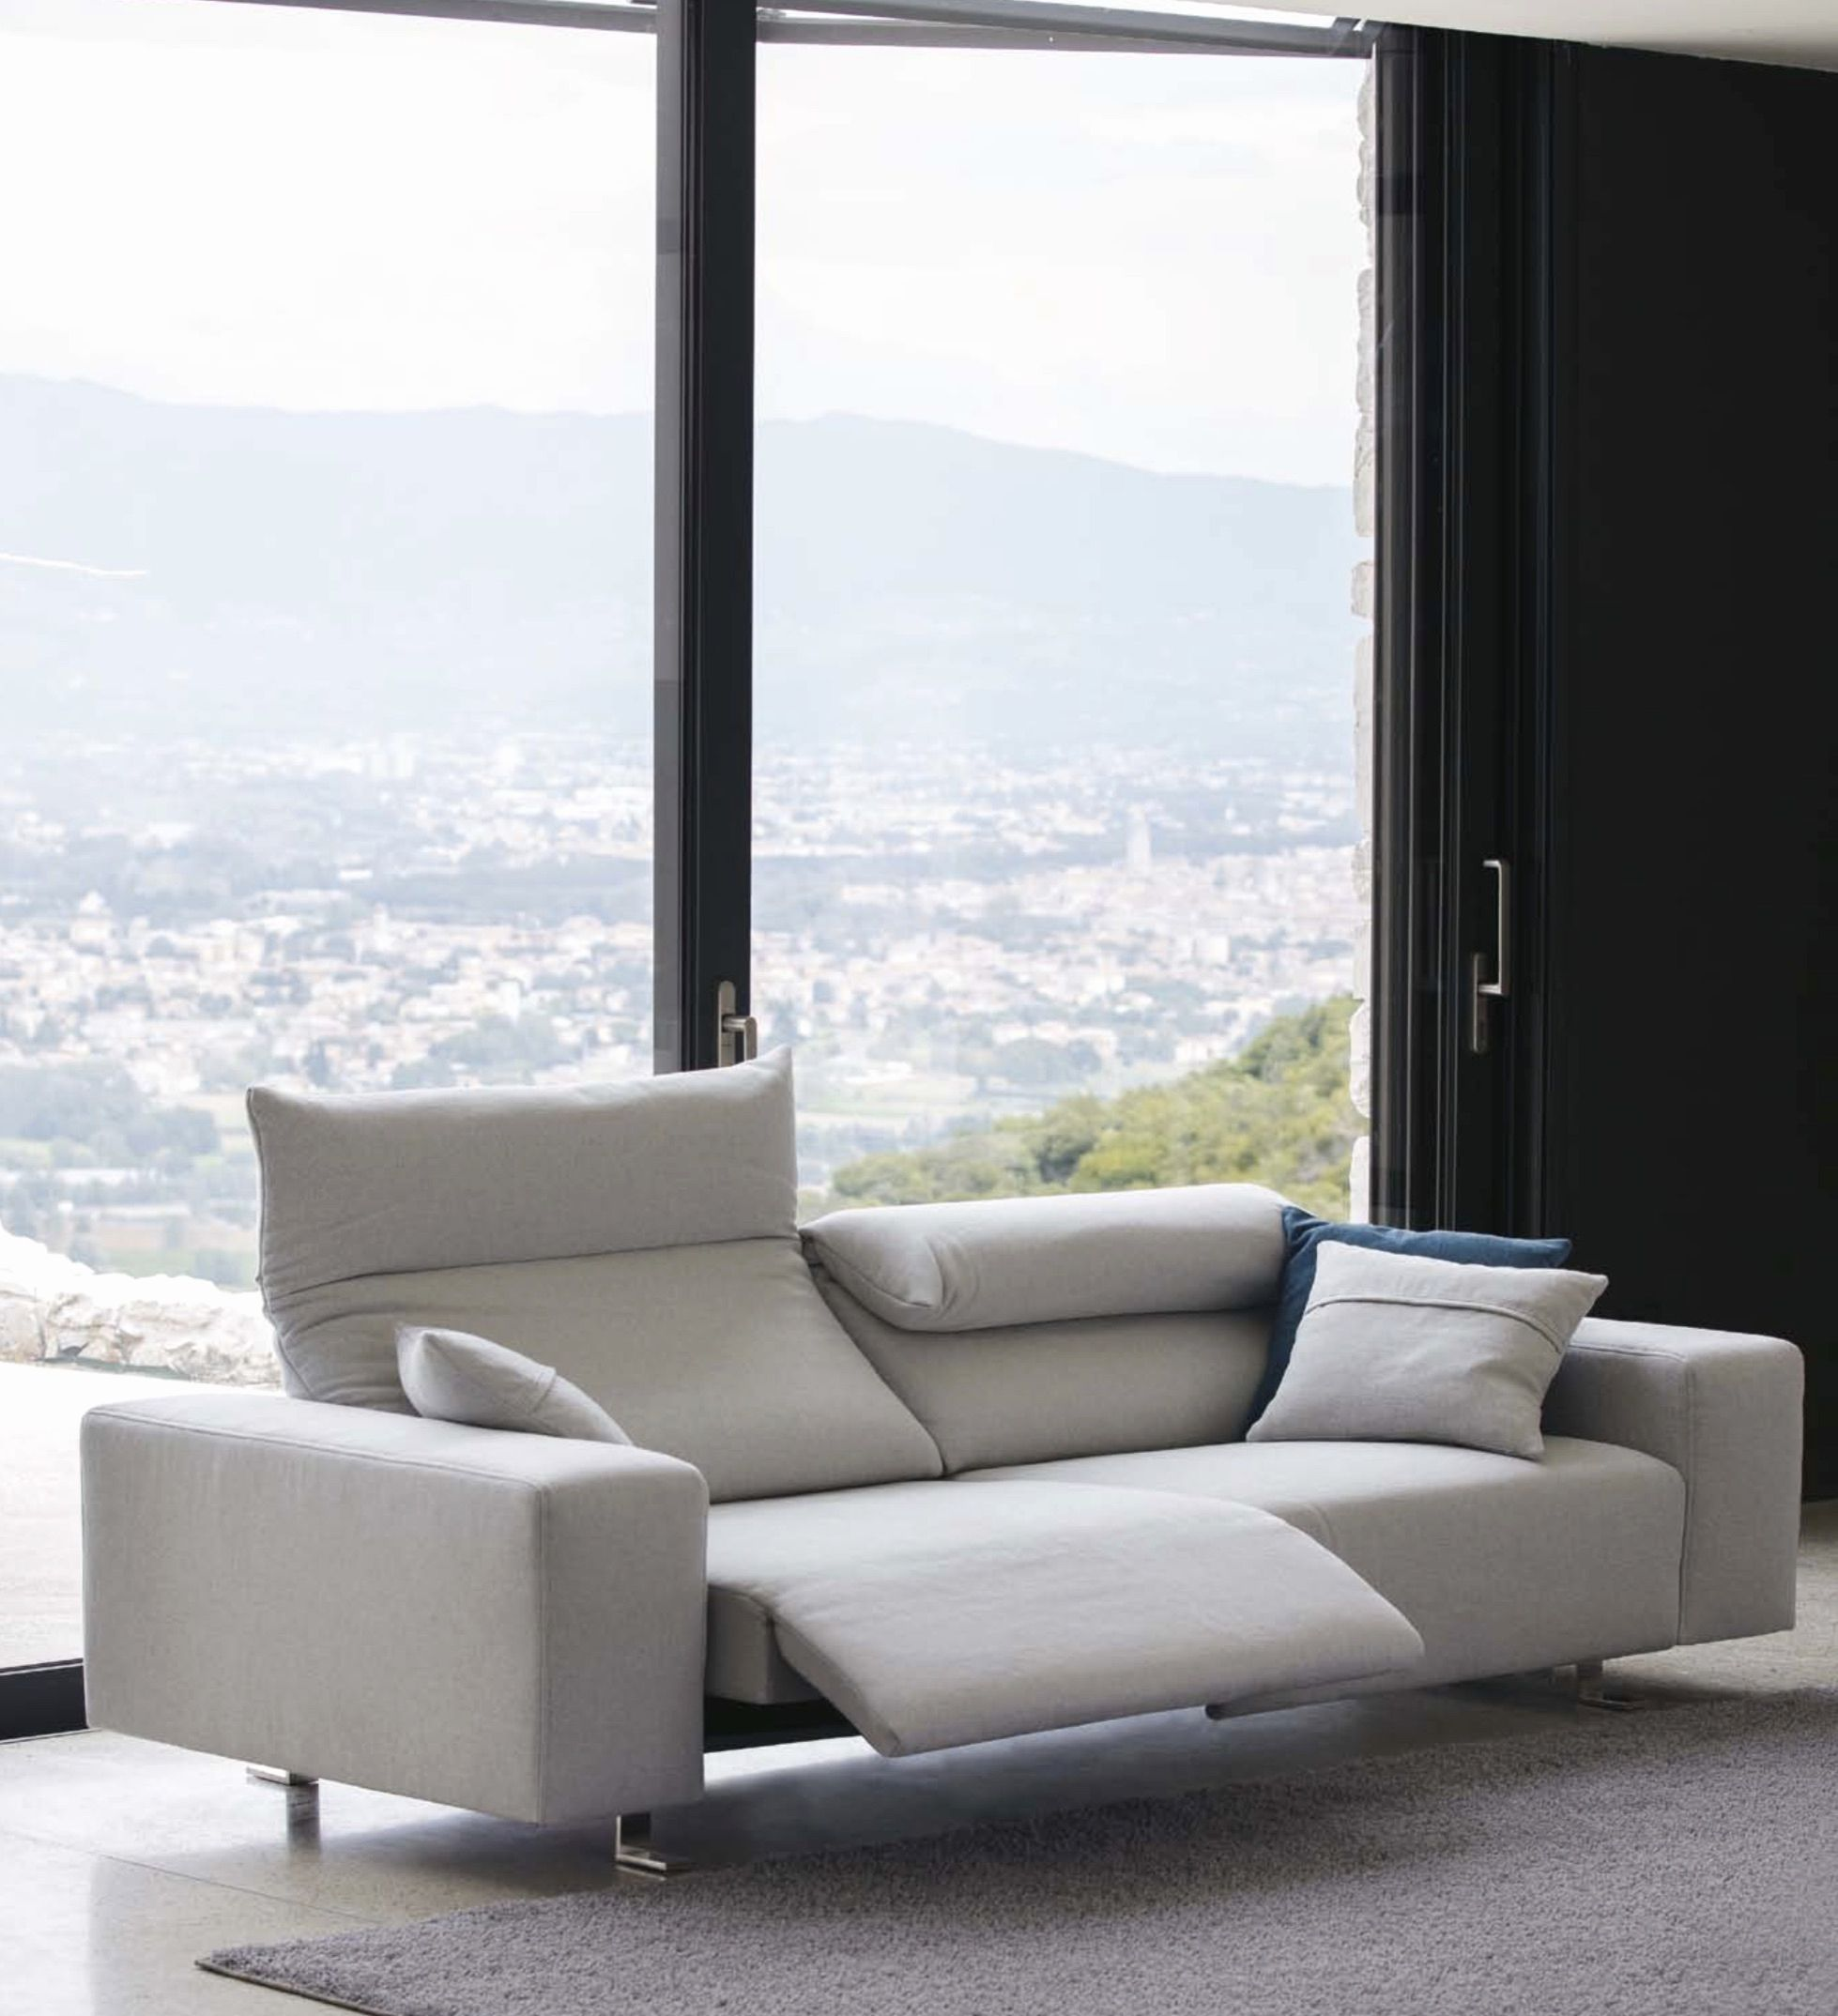 Amazing Contemporary Chaise Sofa Photograpy Contemporary Chaise